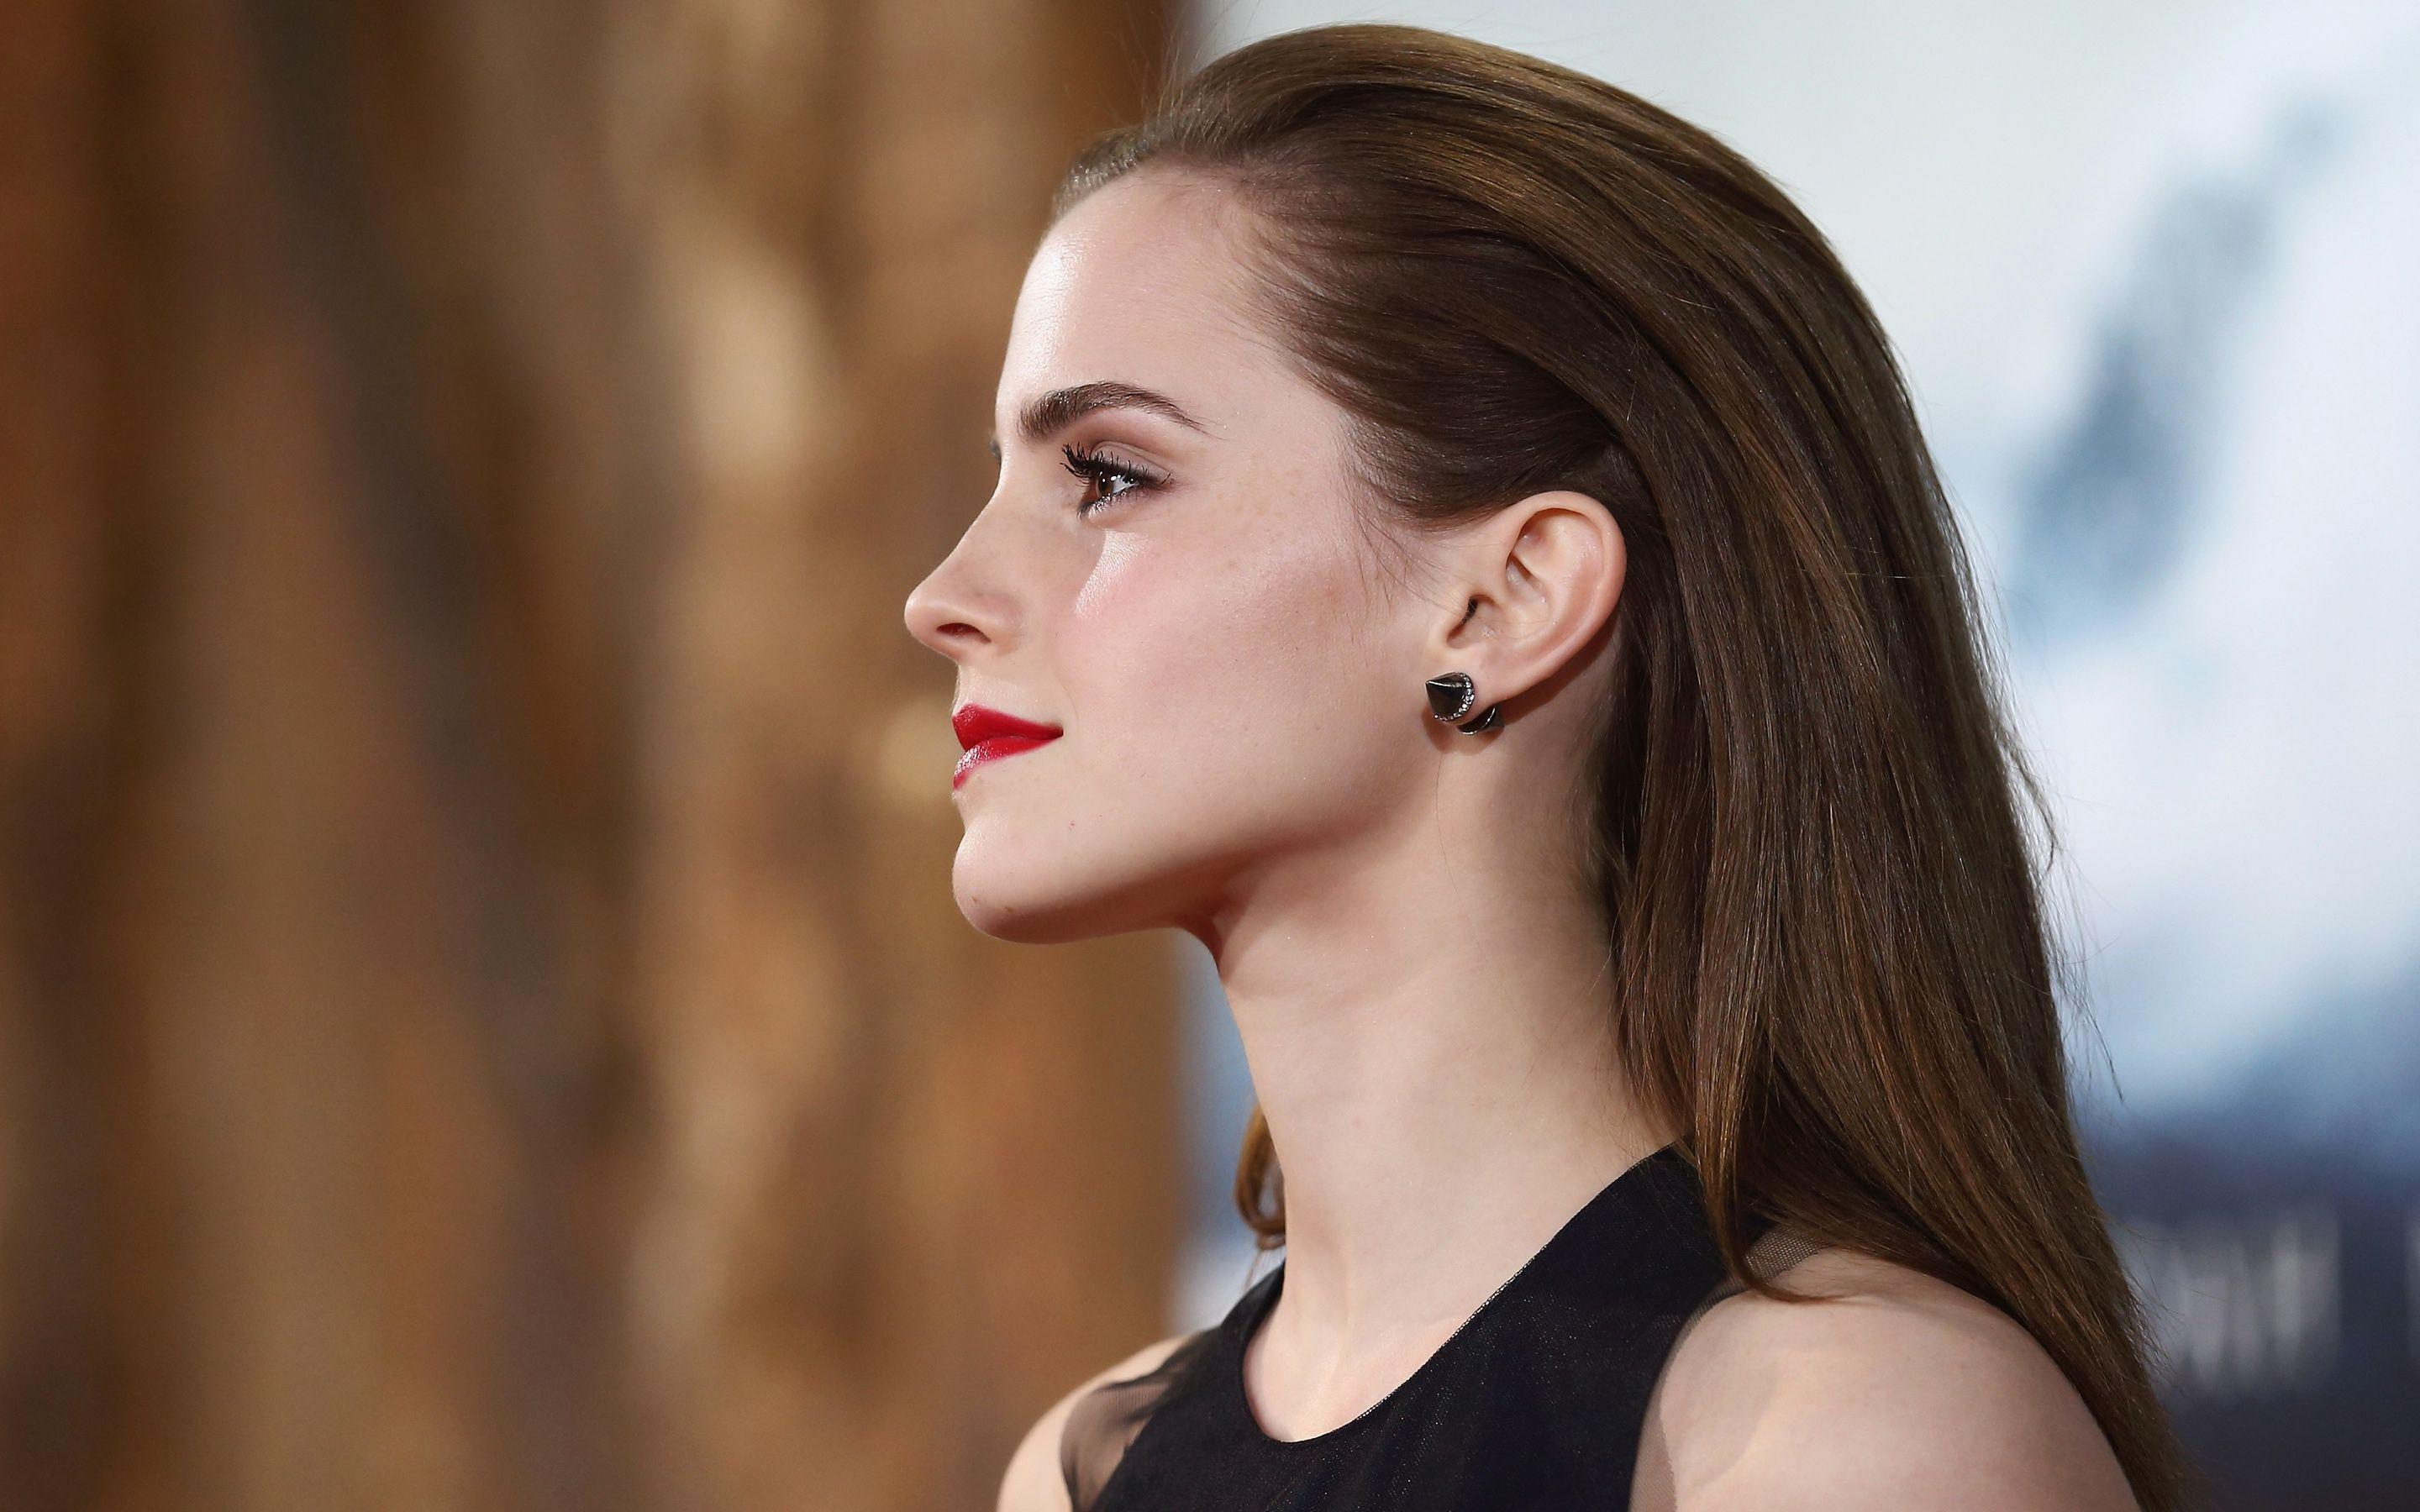 Emma Watson Wallpapers | Celebrities HD Wallpapers - Page 1